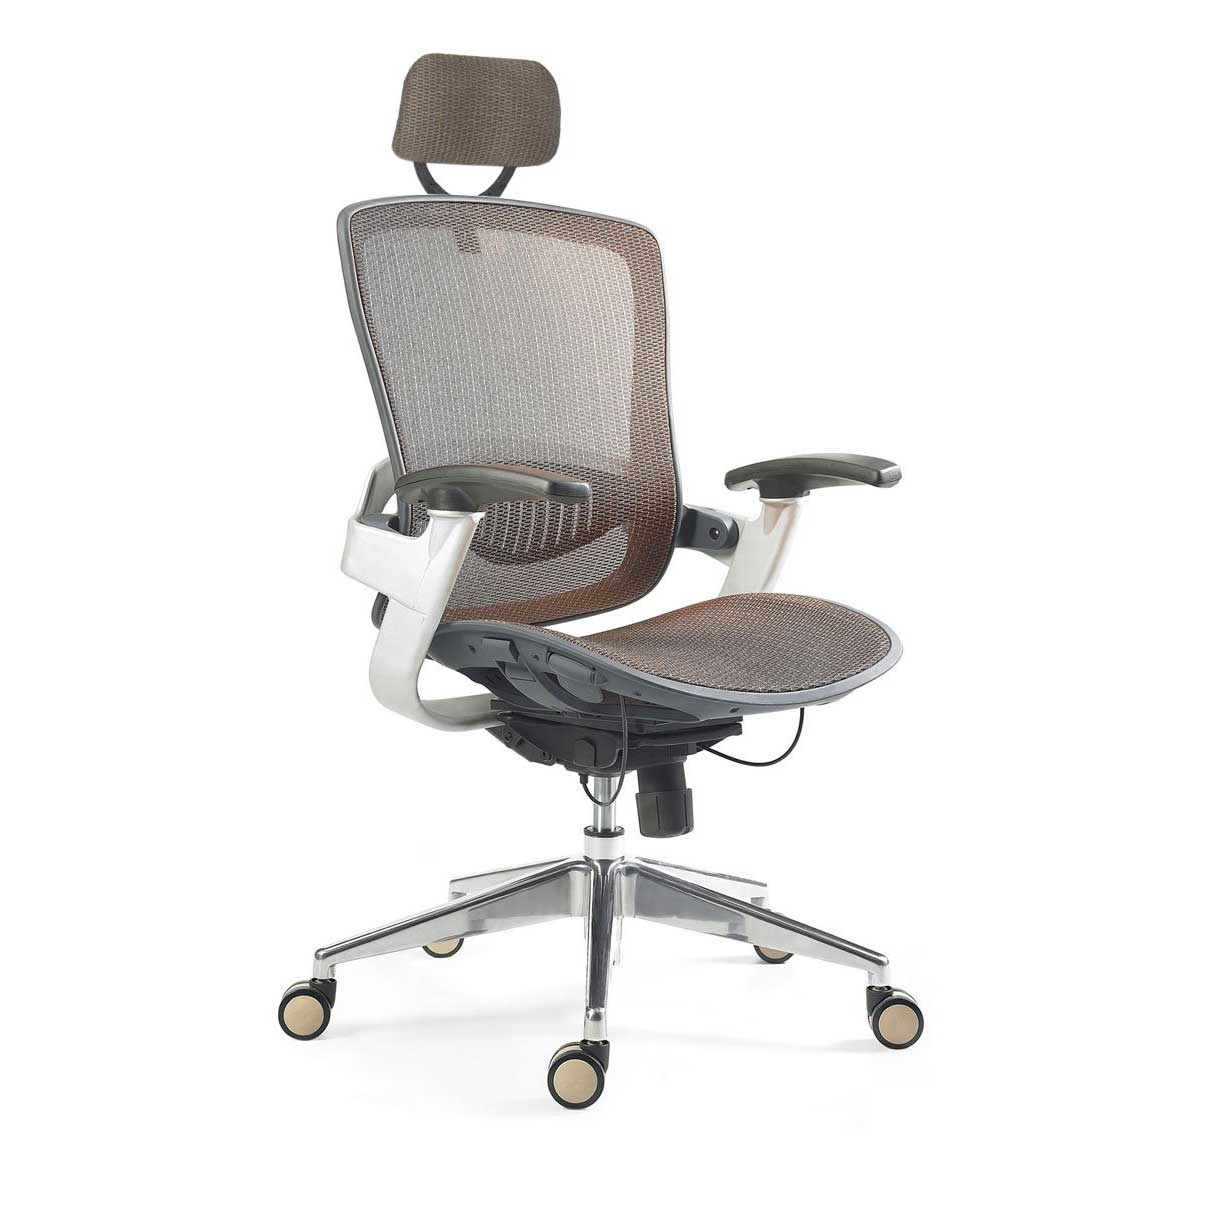 Mesh computer chairs for home office interior for Contemporary office chairs modern